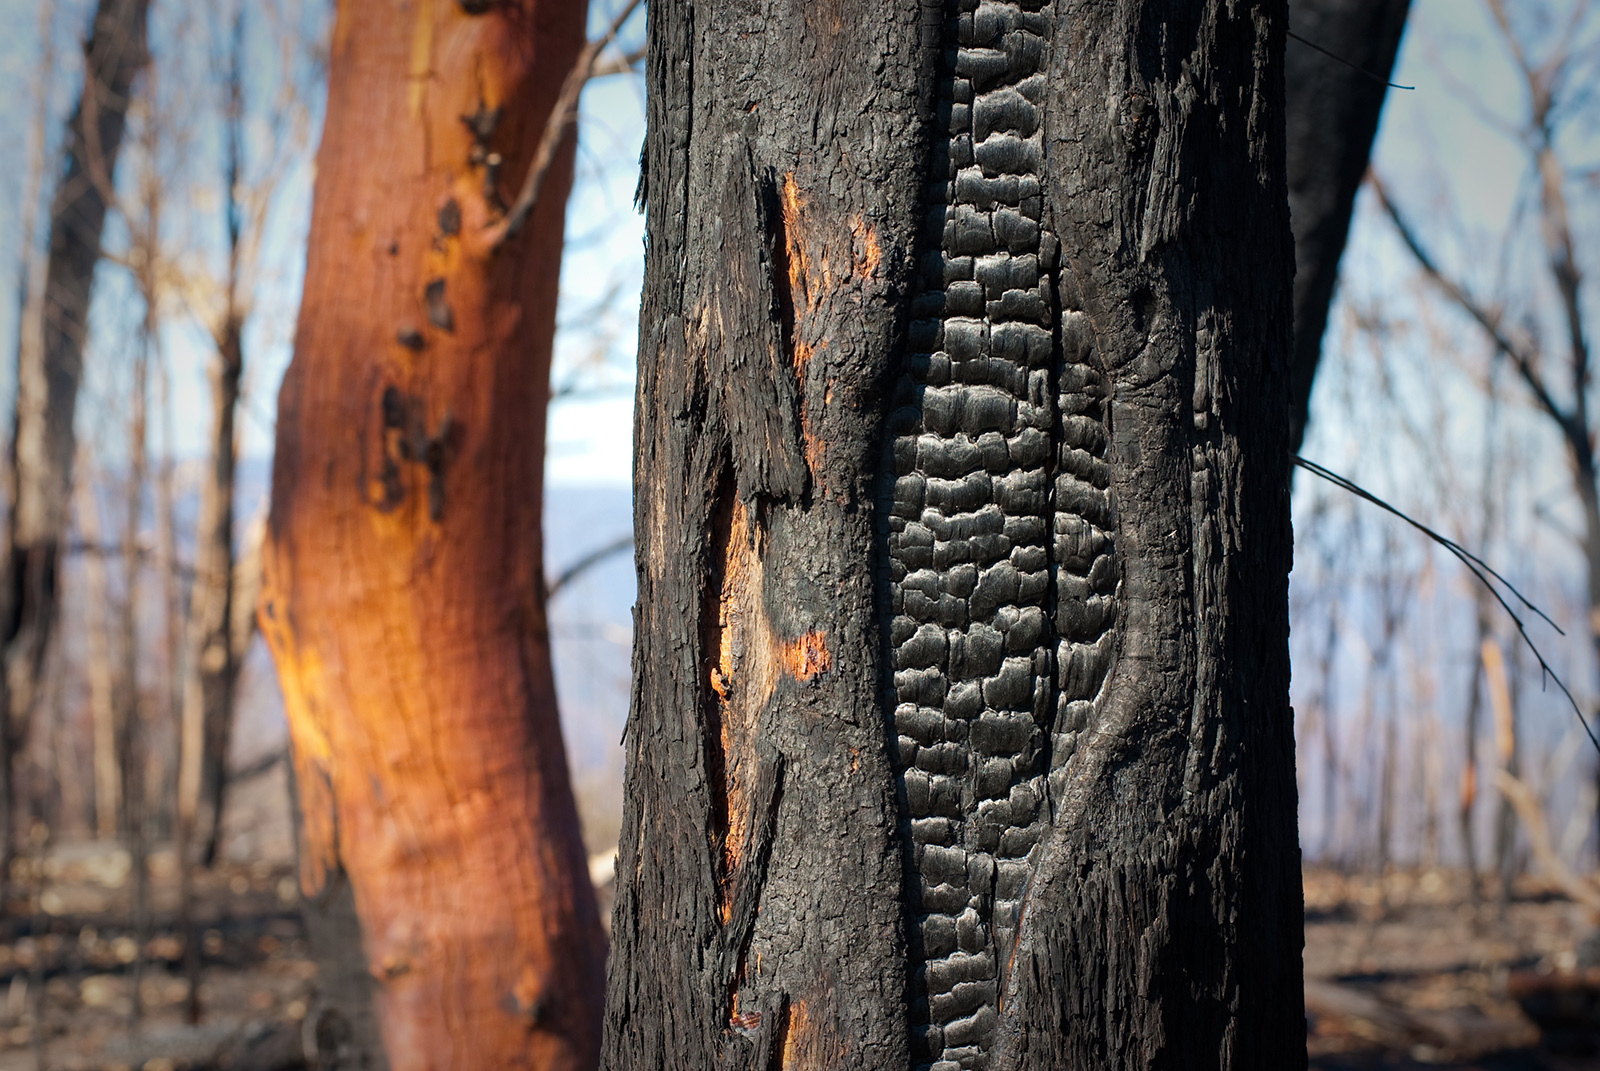 Partially burnt tree saved from bushfire